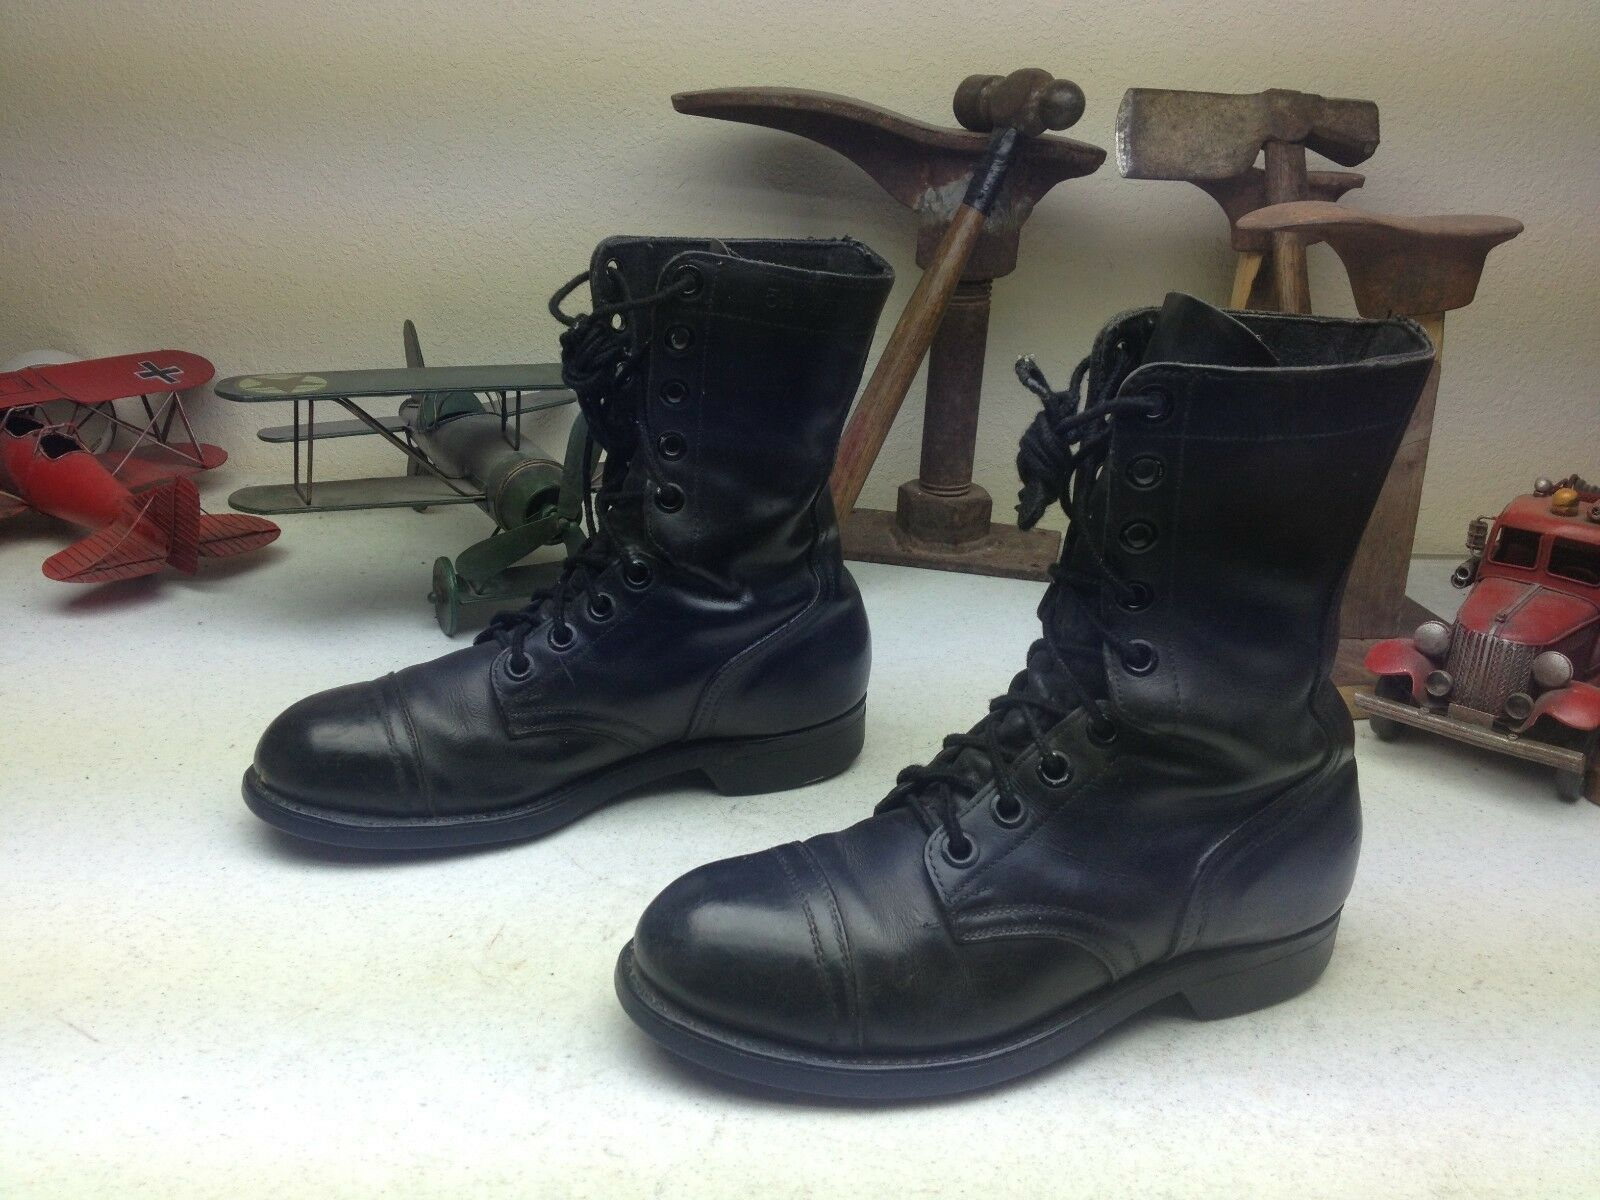 nero 1984 VINTAGE DISTRESSED USA MILITARY LACE UP ENGINEER JUMP BOSS stivali 5.5W